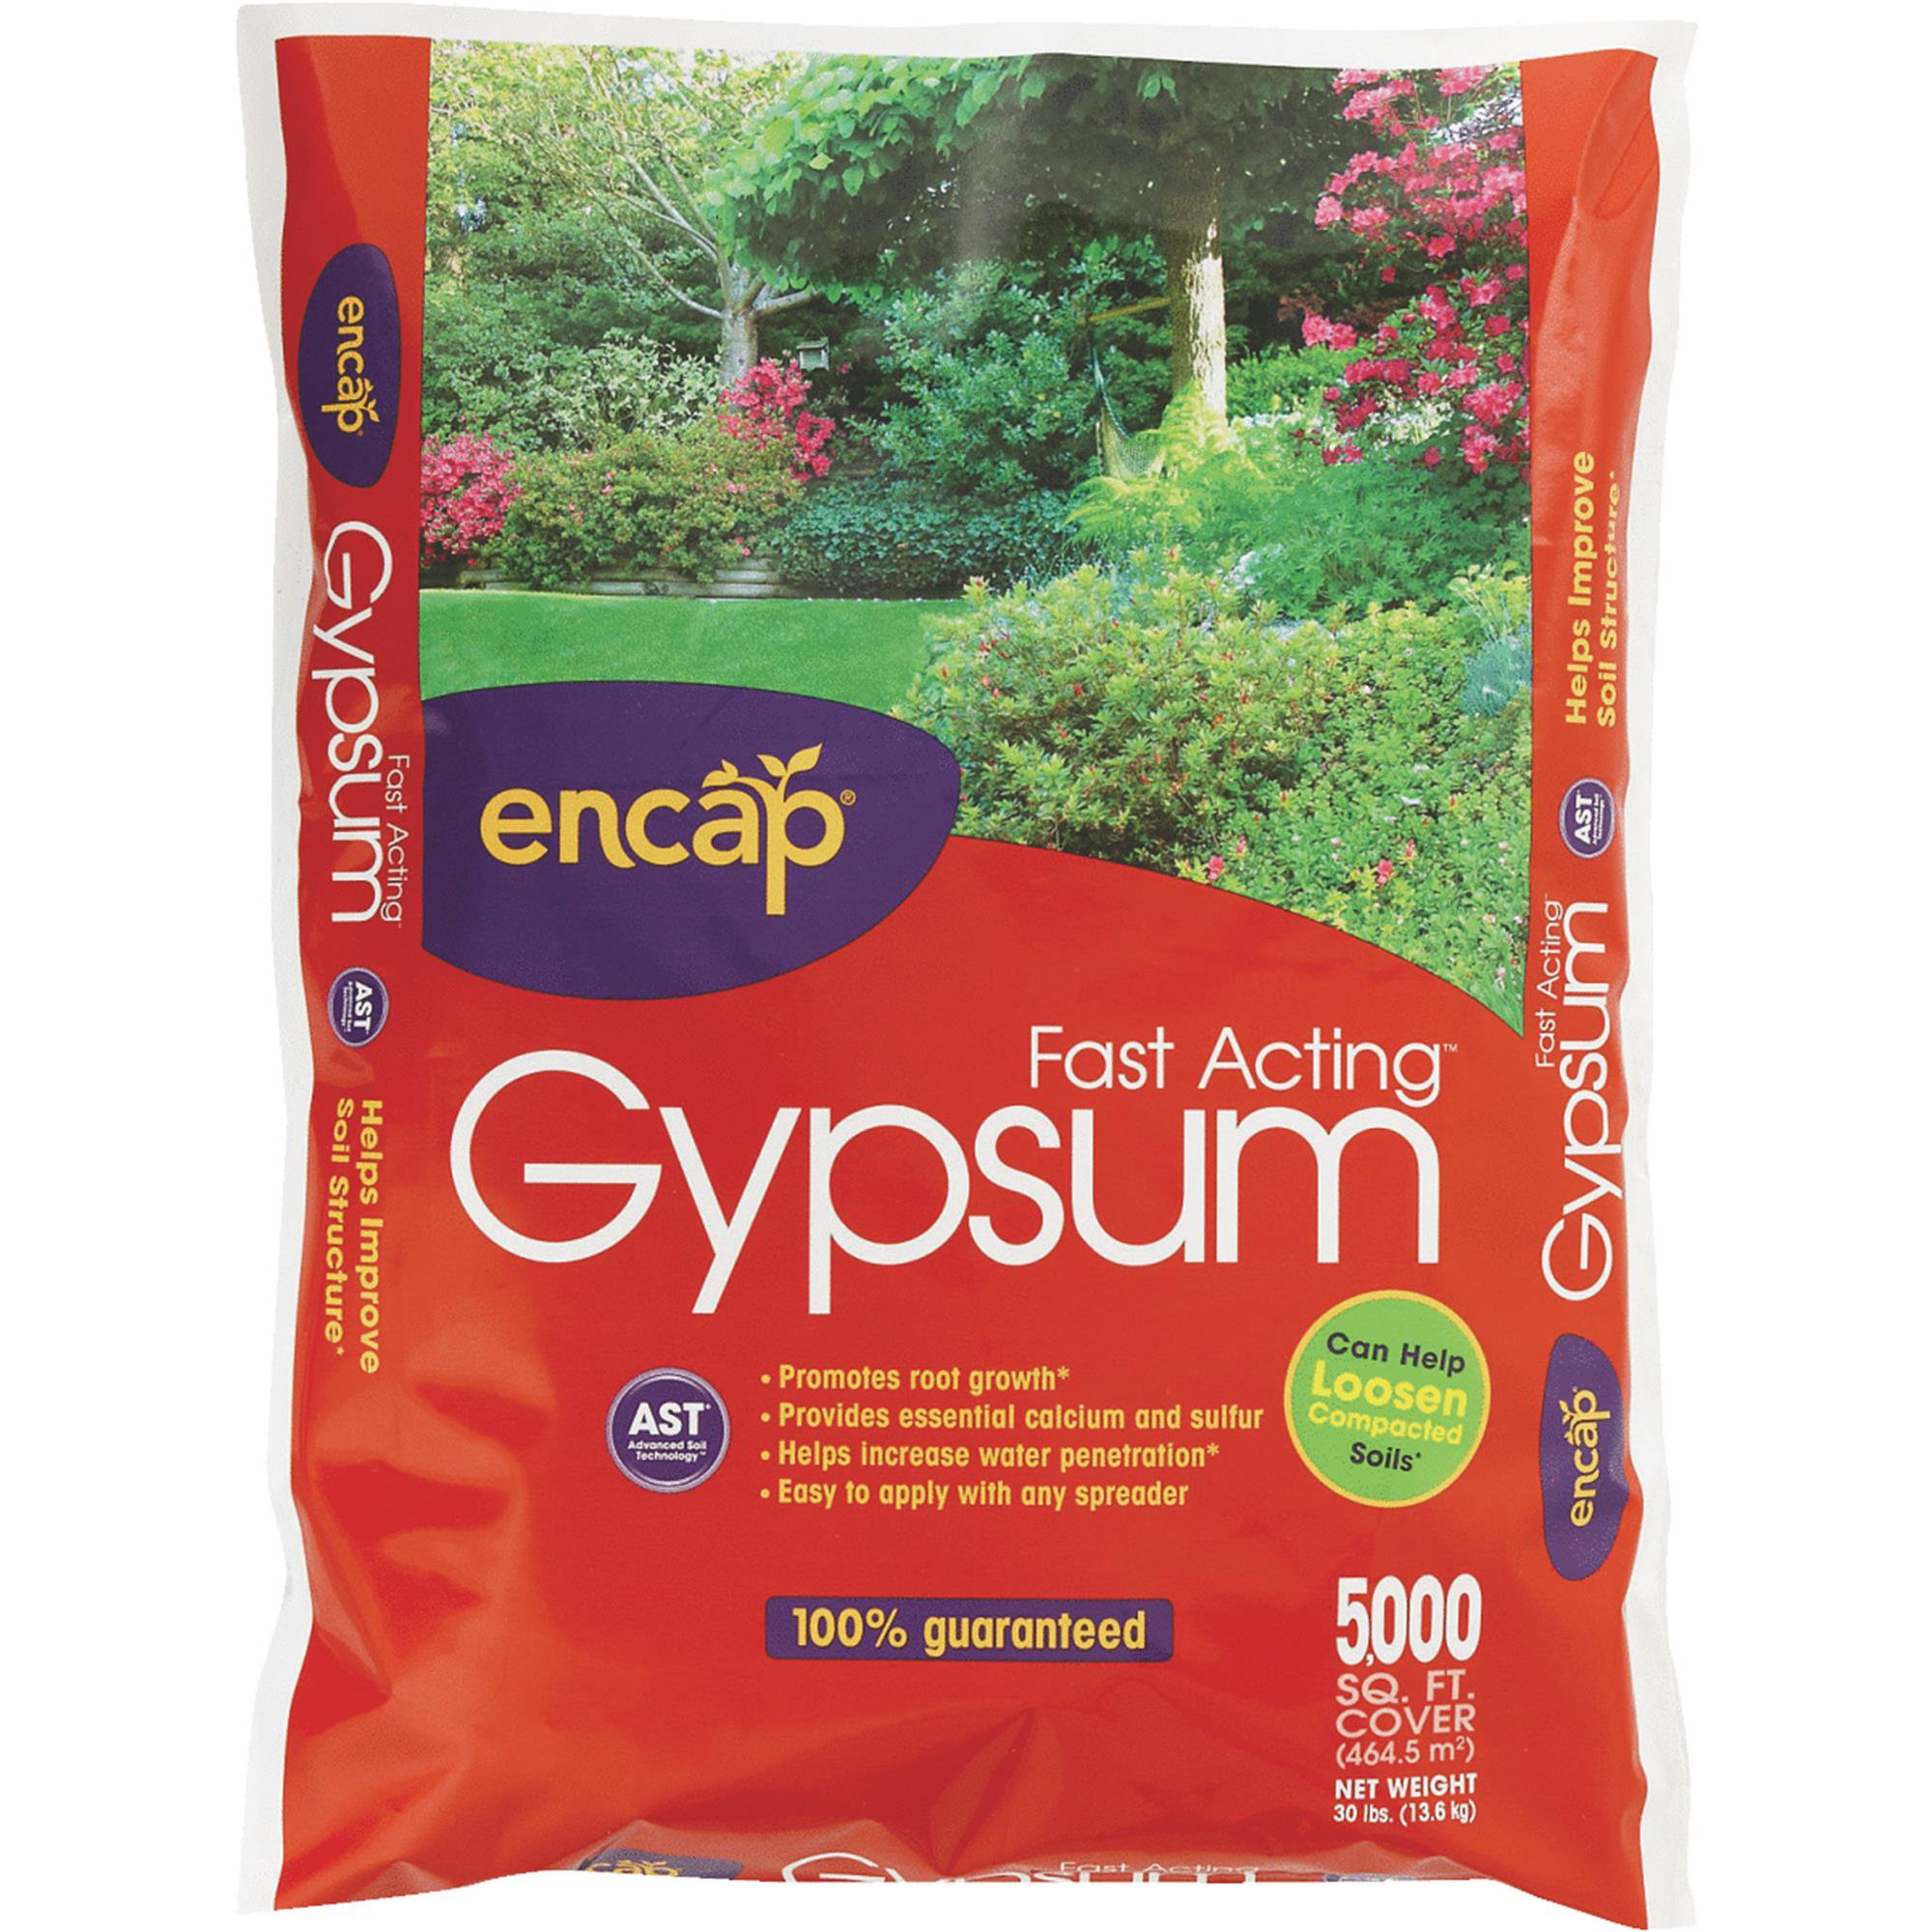 Encap Gypsum Plus 30lbs, 5000sqft Coverage